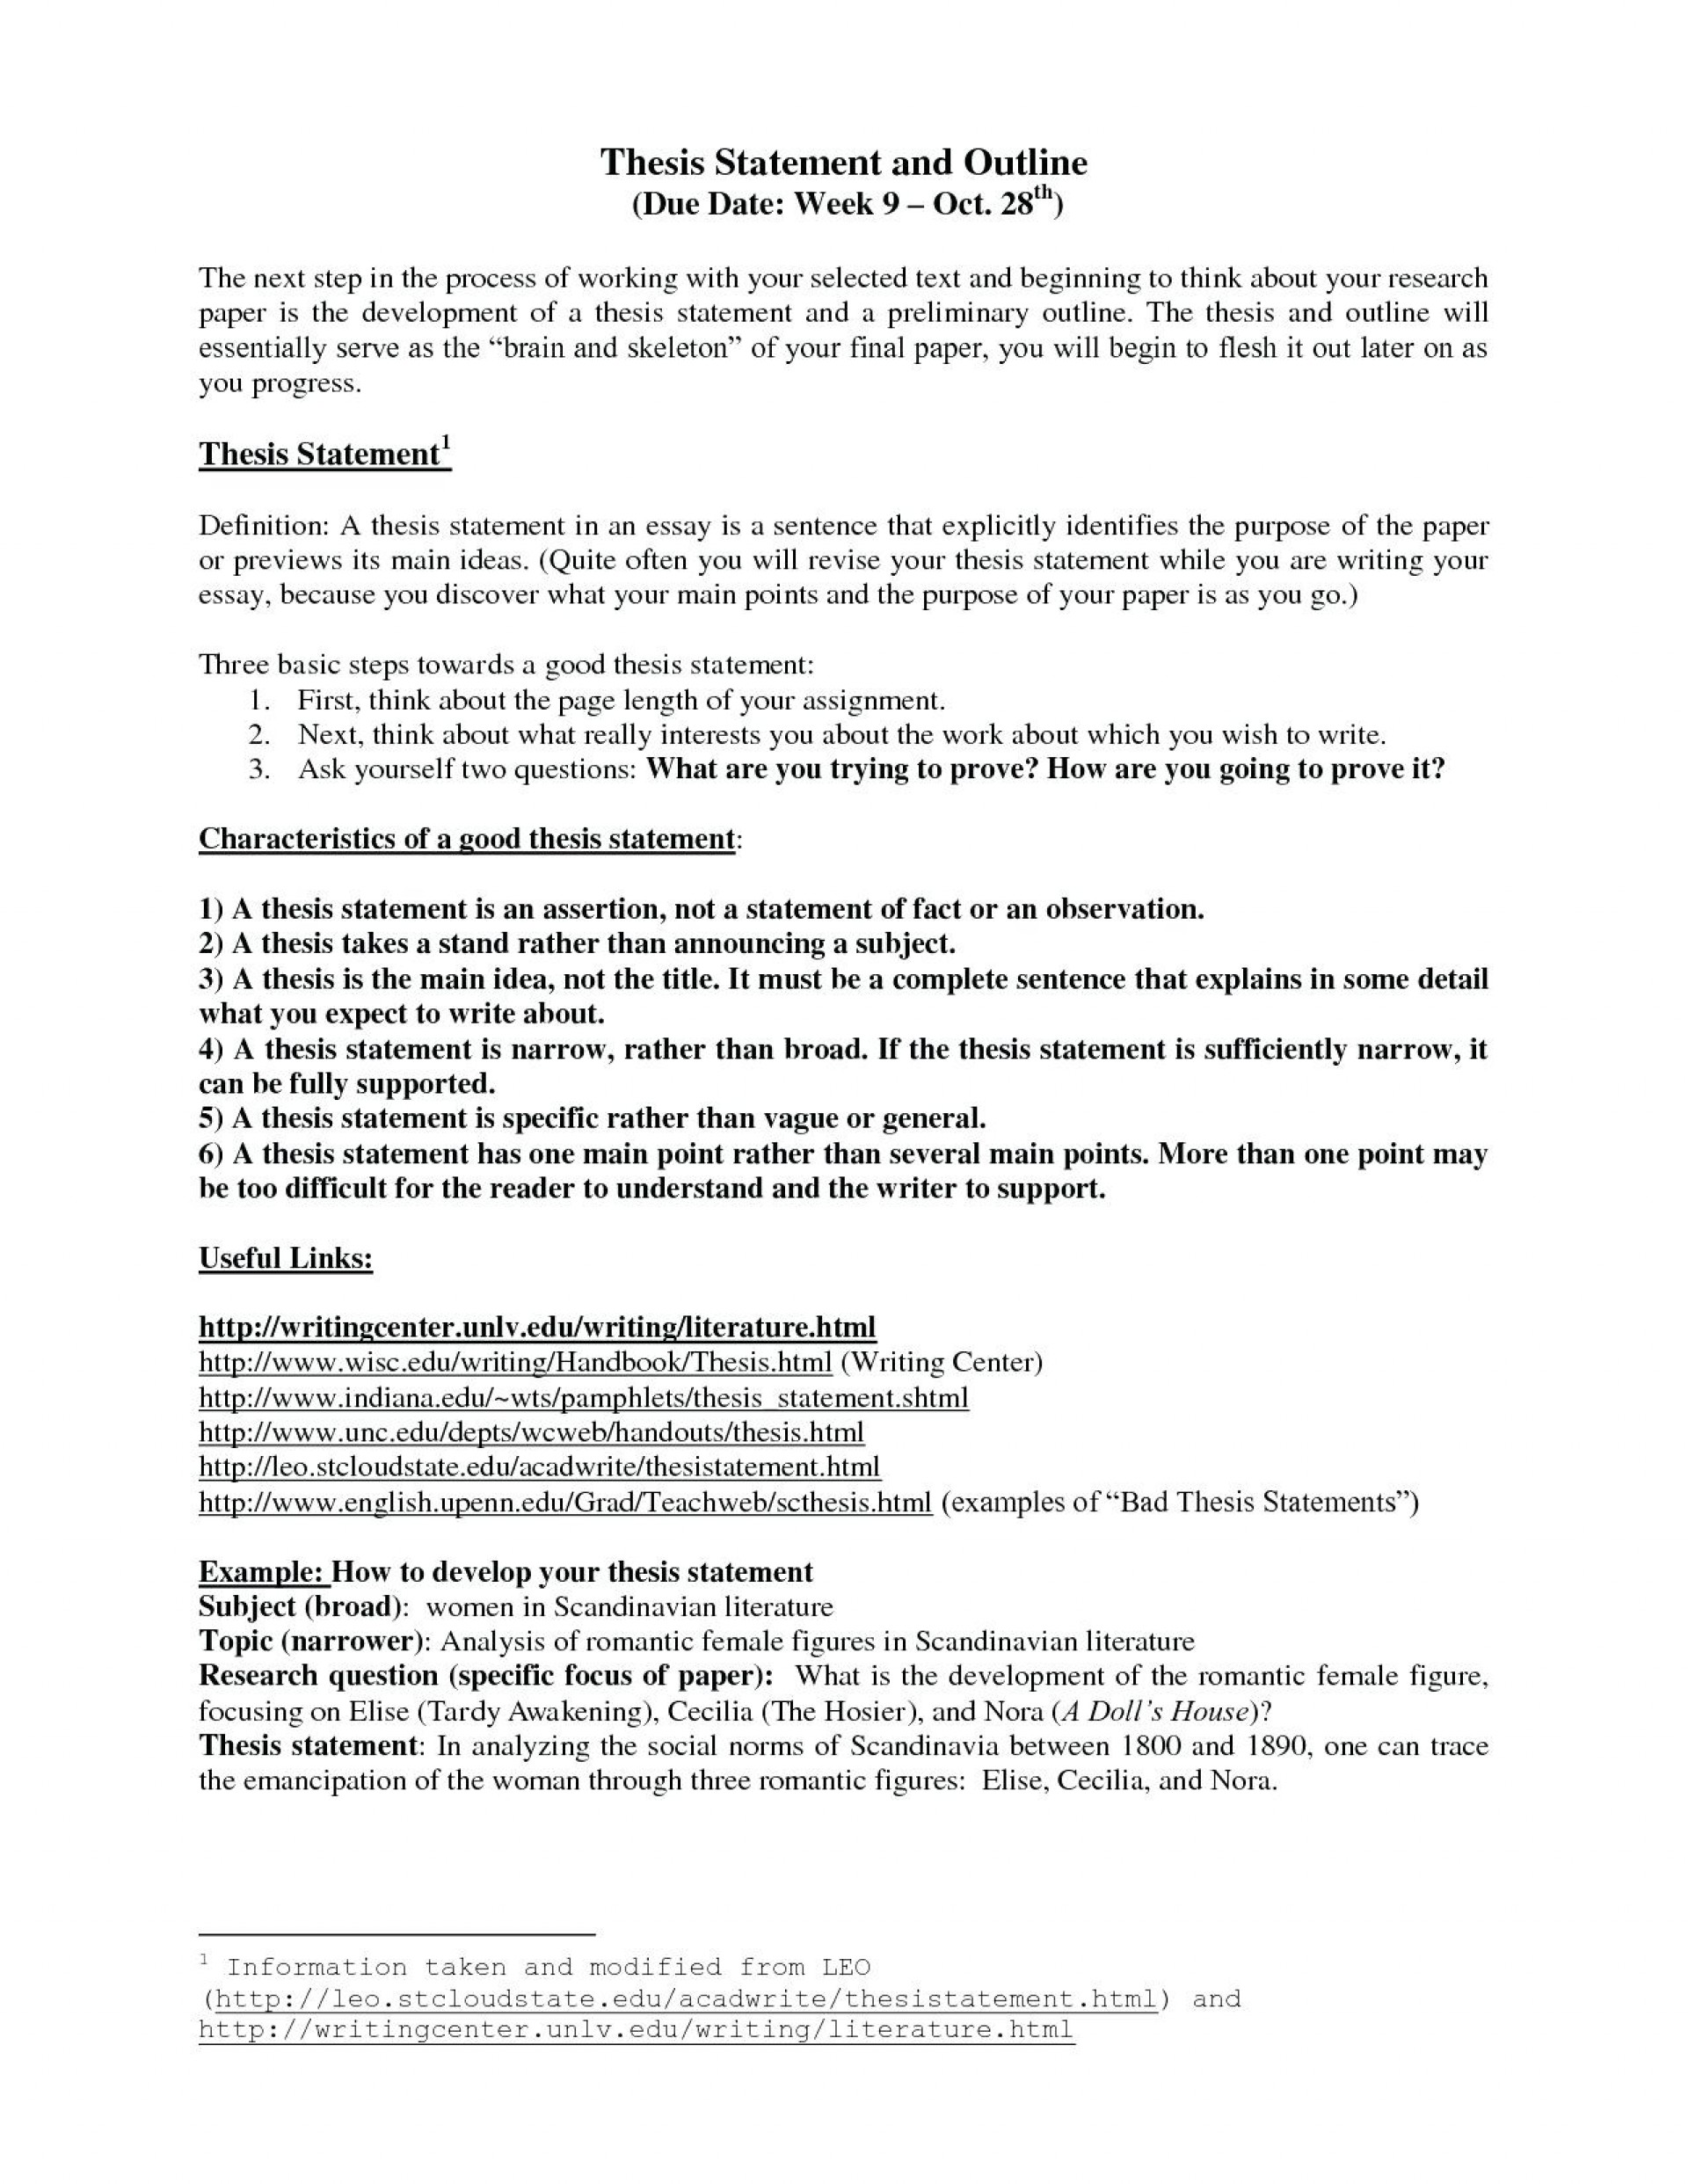 004 Essay Example Apa Template Paper Definition With Cheap Papers Style Running Head Write My For Shocking Free Me Uk Online 1920